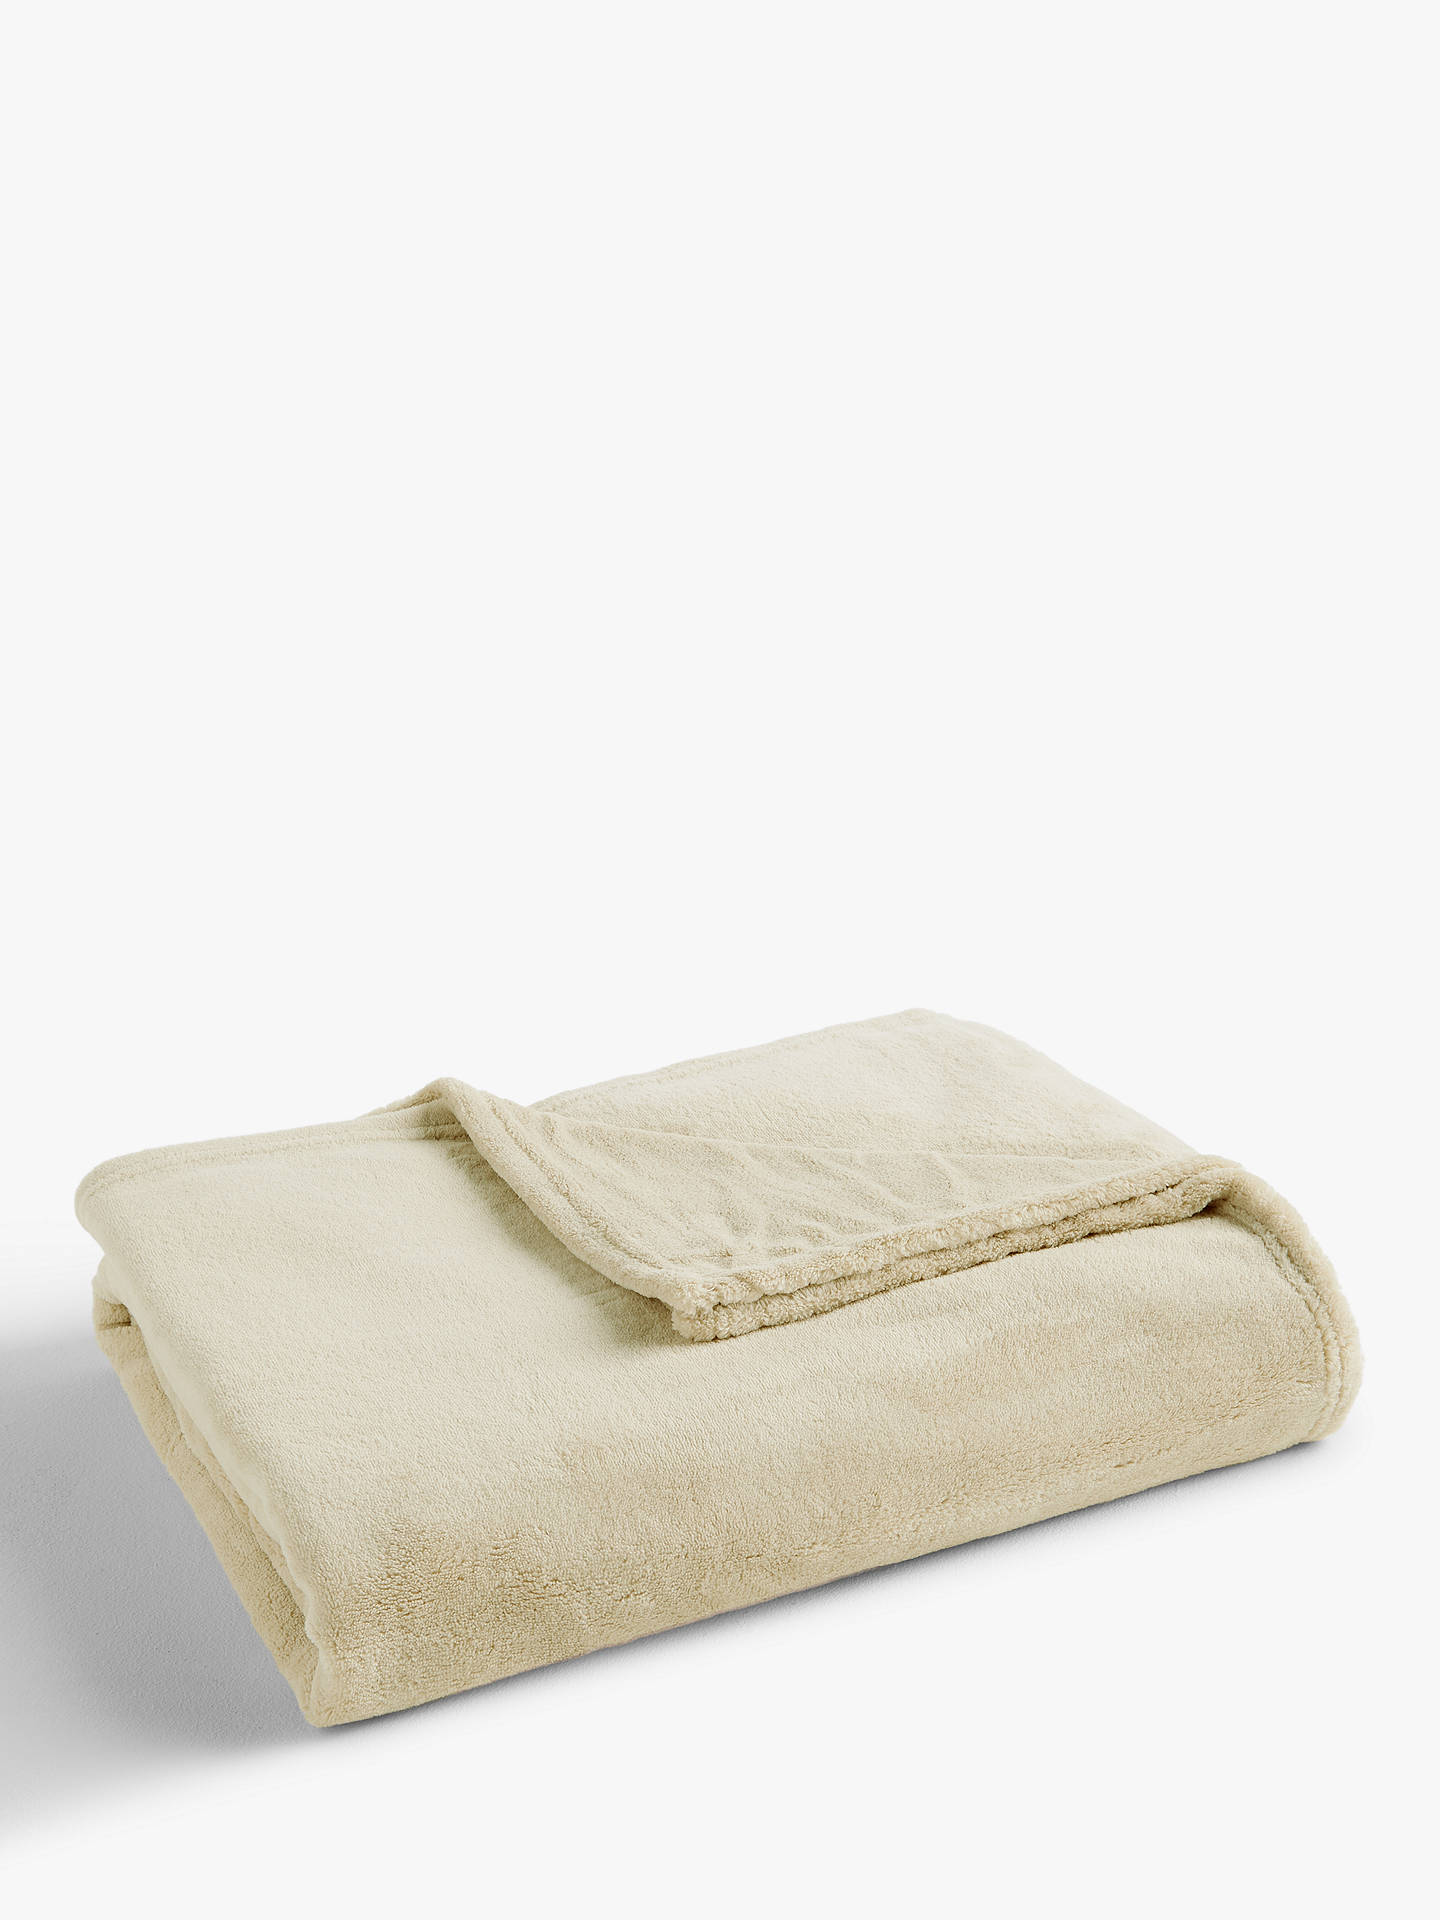 Buy John Lewis & Partners Fleece Throw, Latte, L180 x W140cm Online at johnlewis.com